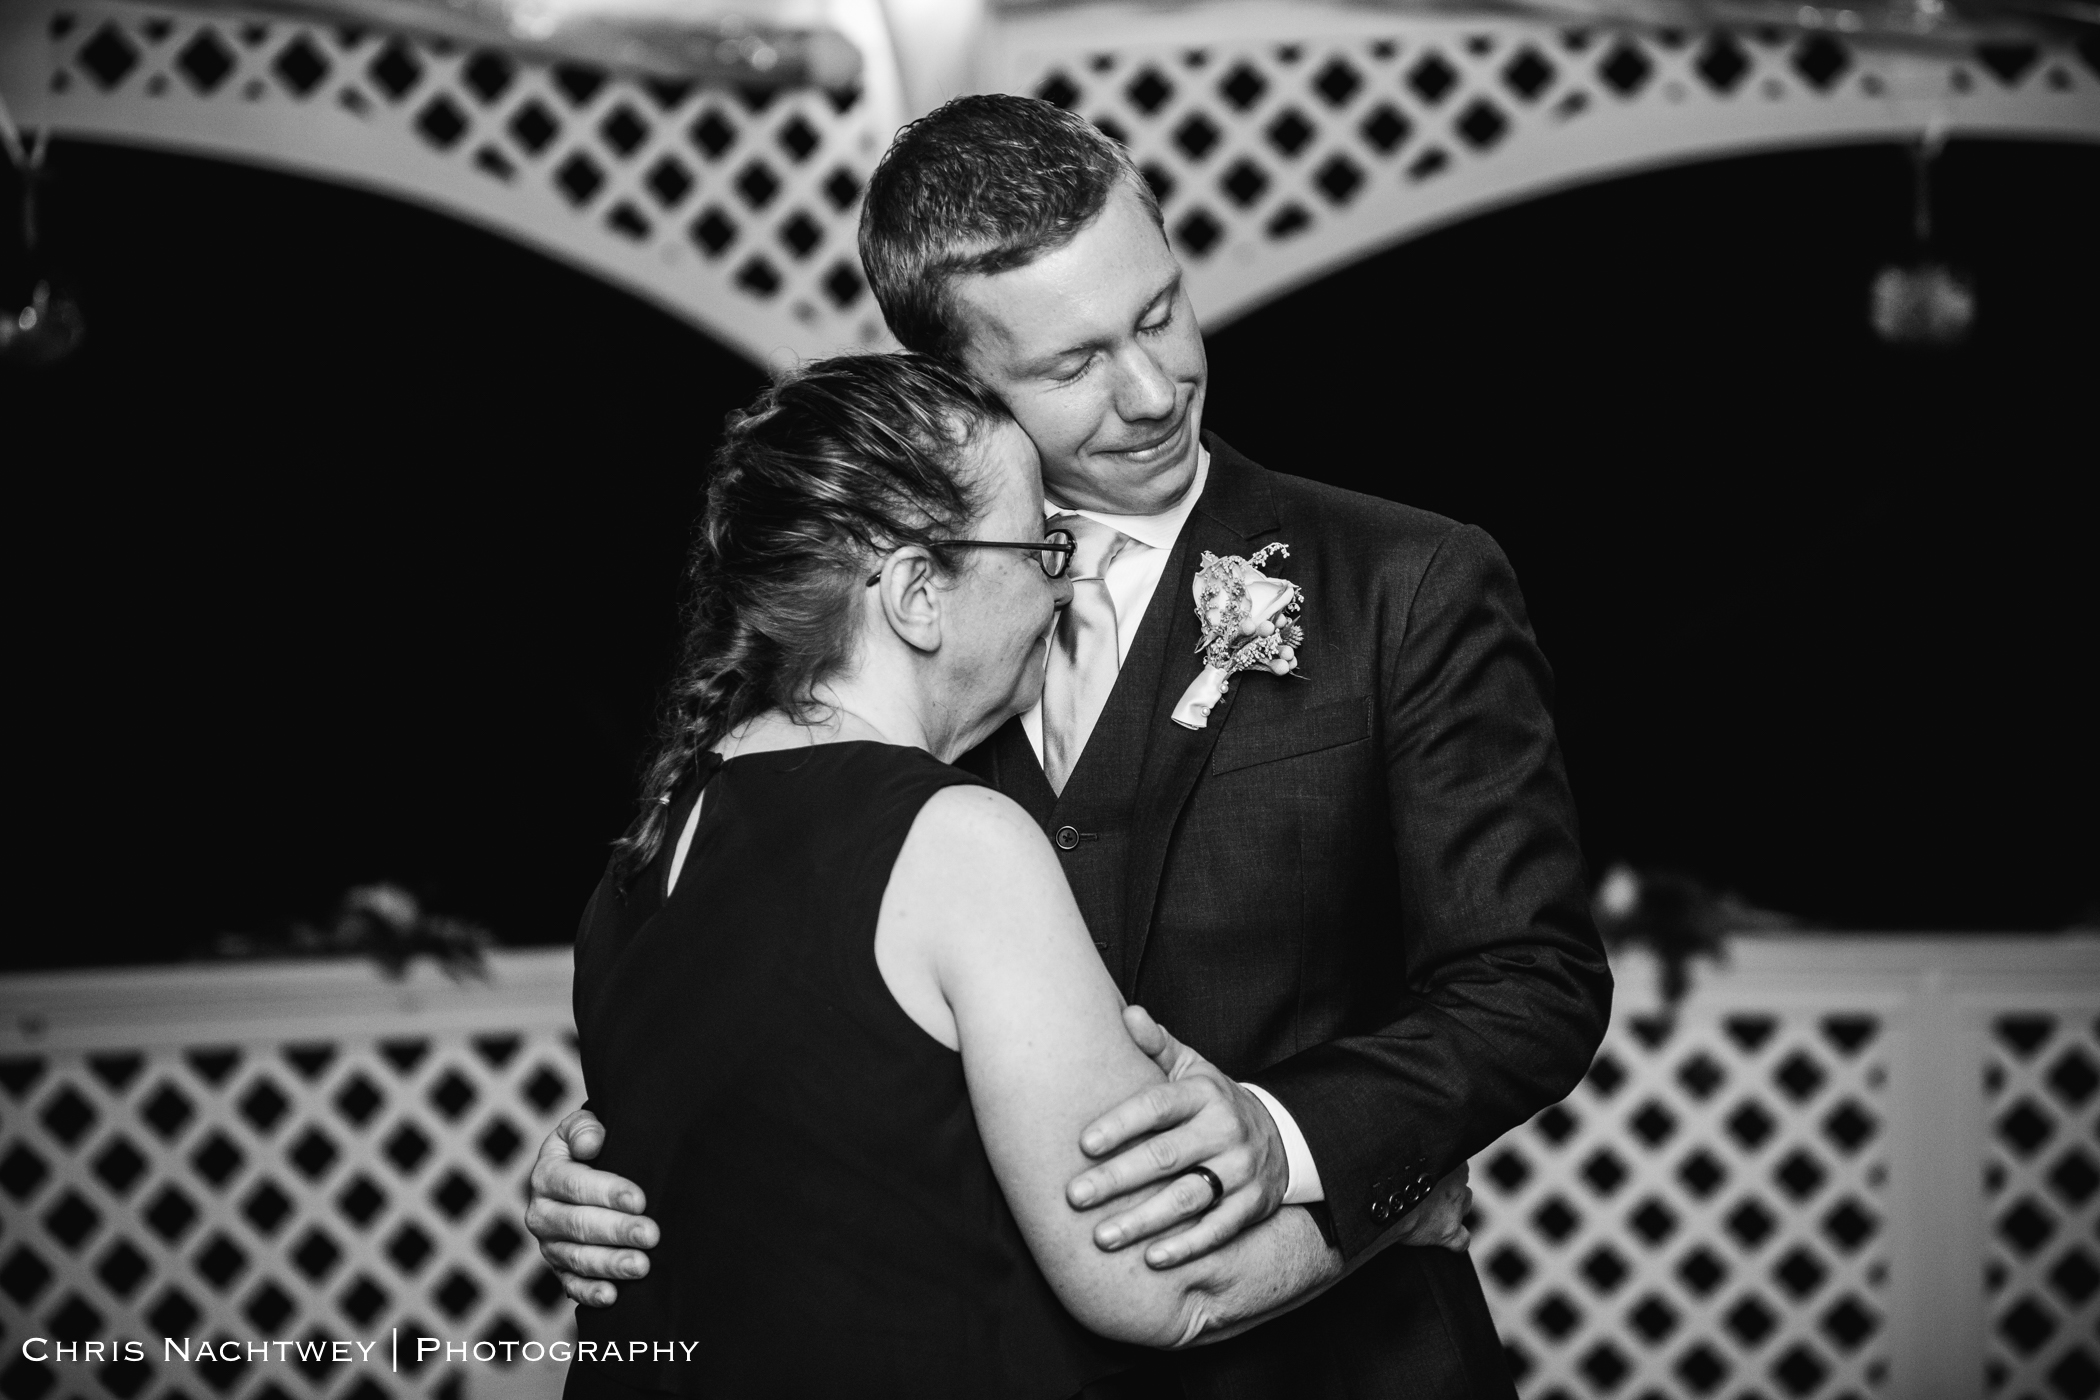 inn-at-mystic-wedding-photos-chris-nachtwey-photography-2018-29.jpg